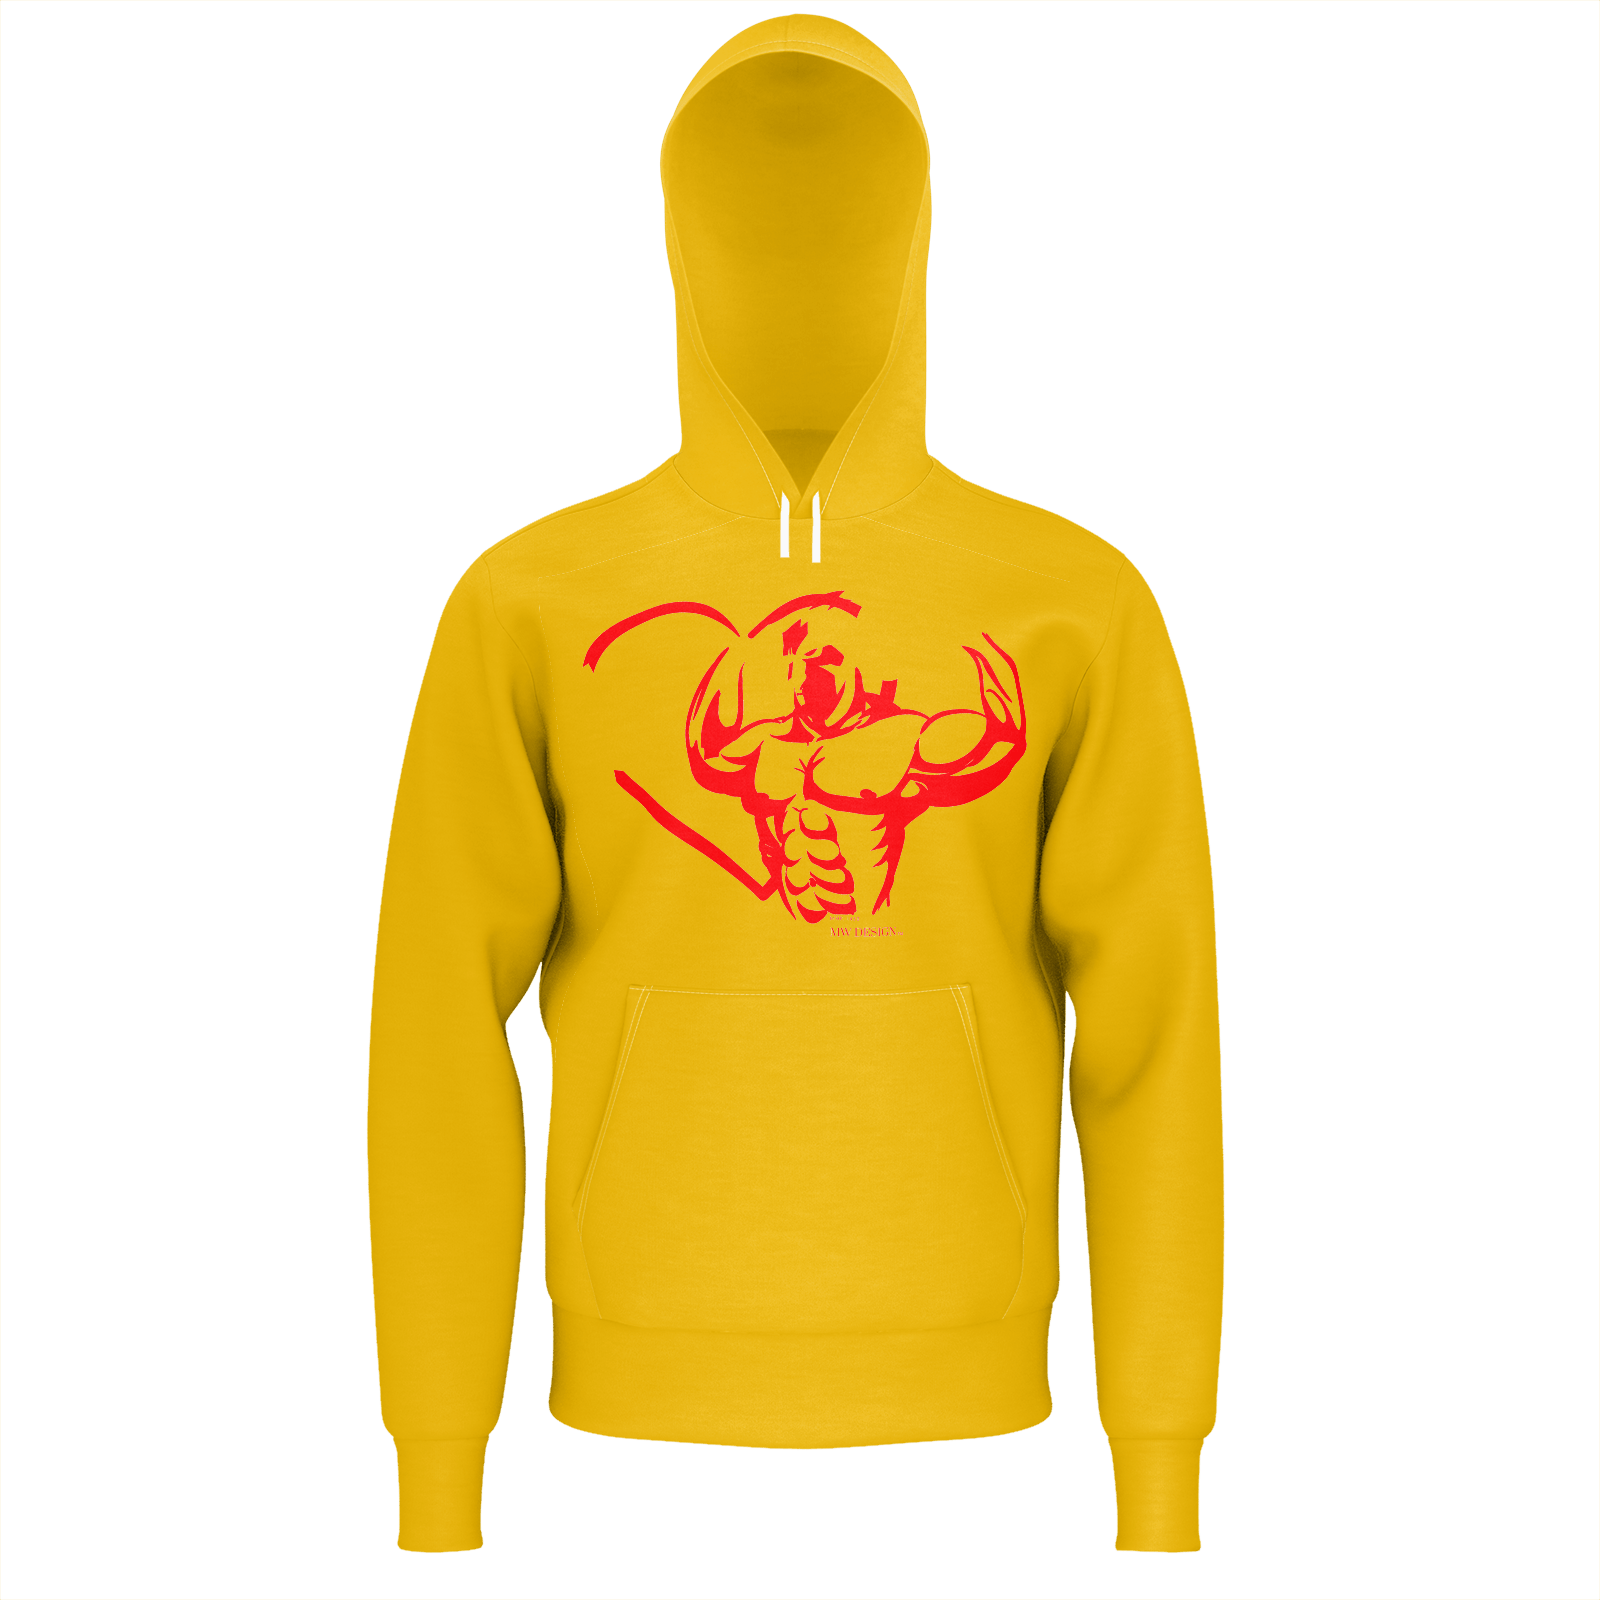 MHP Love Strength Gladiator Pullover Sweatshirt Amber 100% French Terry Cotton